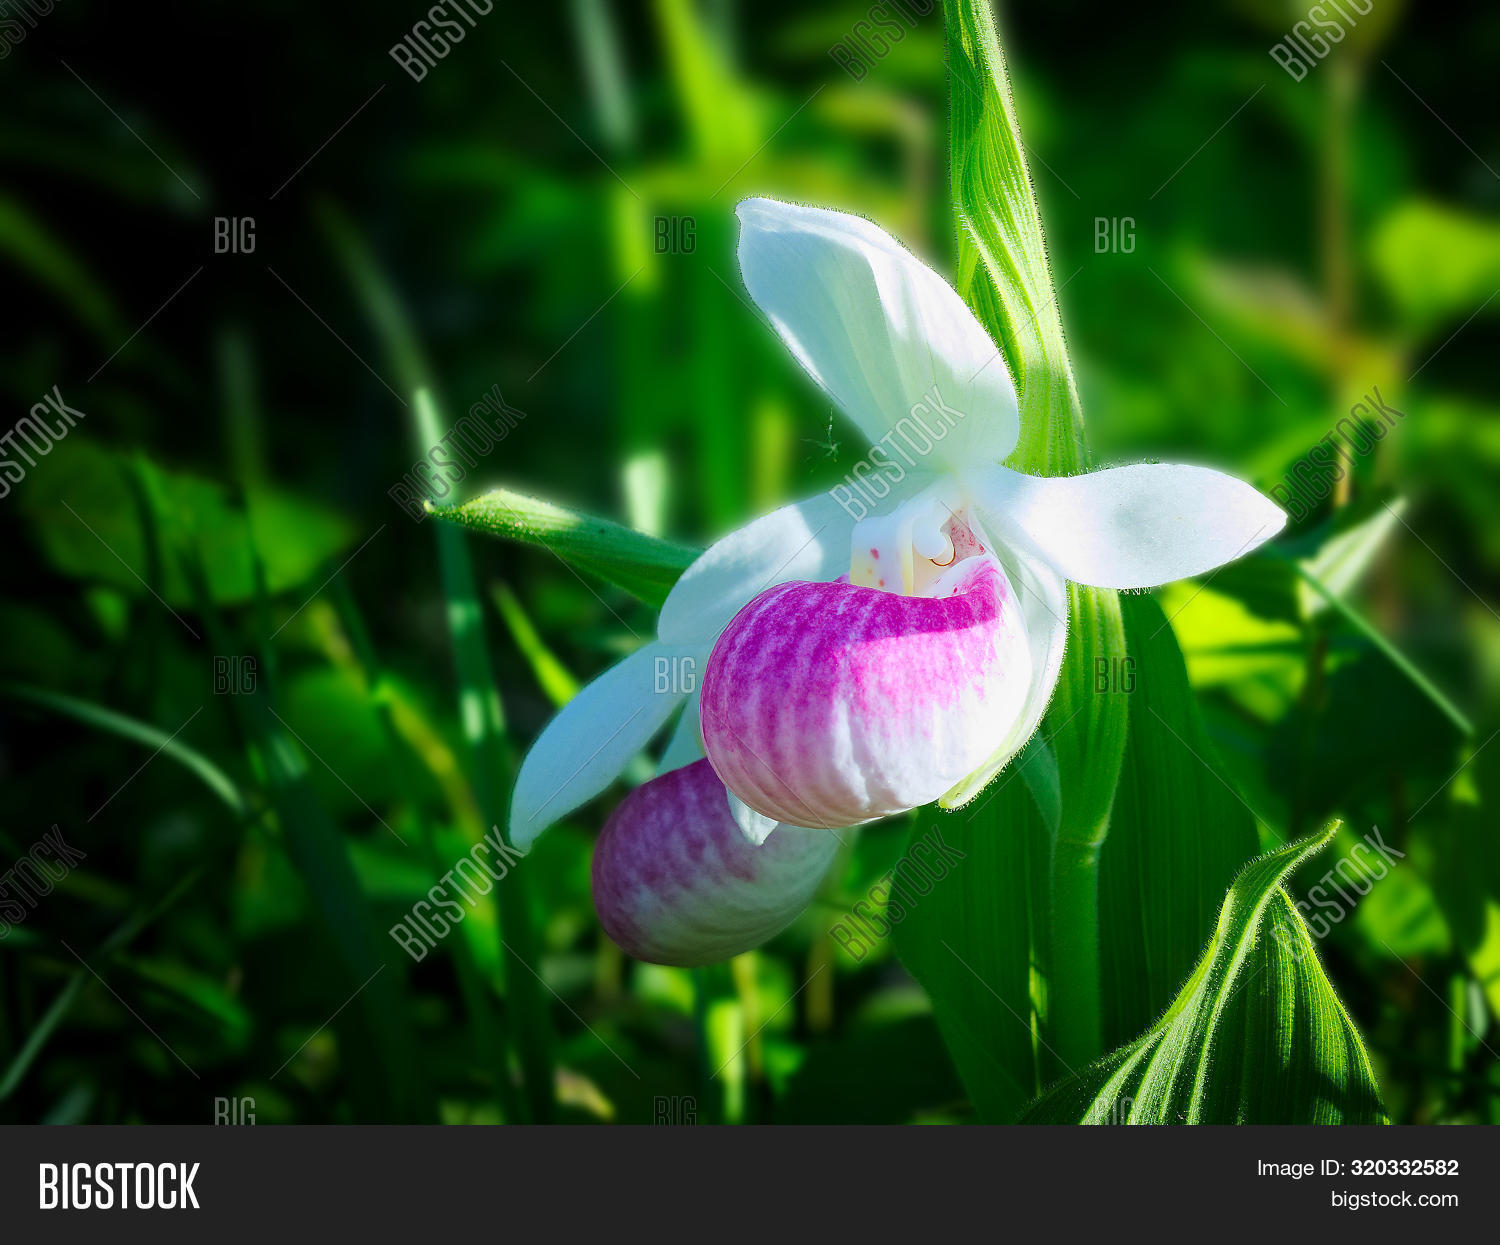 Cypripedioideae,Orchidaceae,beautiful,bloom,blossom,bog,botanical,botany,close,close-up,closeup,cypripedium,delicate,detail,ecology,endangered,espe,flora,floral,flower,green,growing,lady,ladyslipper,leaves,minnesota,moccasin,natural,nature,orchid,outdoors,pink,pink-and-white,plant,pretty,protected,rare,reginae,showy,slipper,spring,state,summer,uncommon,white,wild